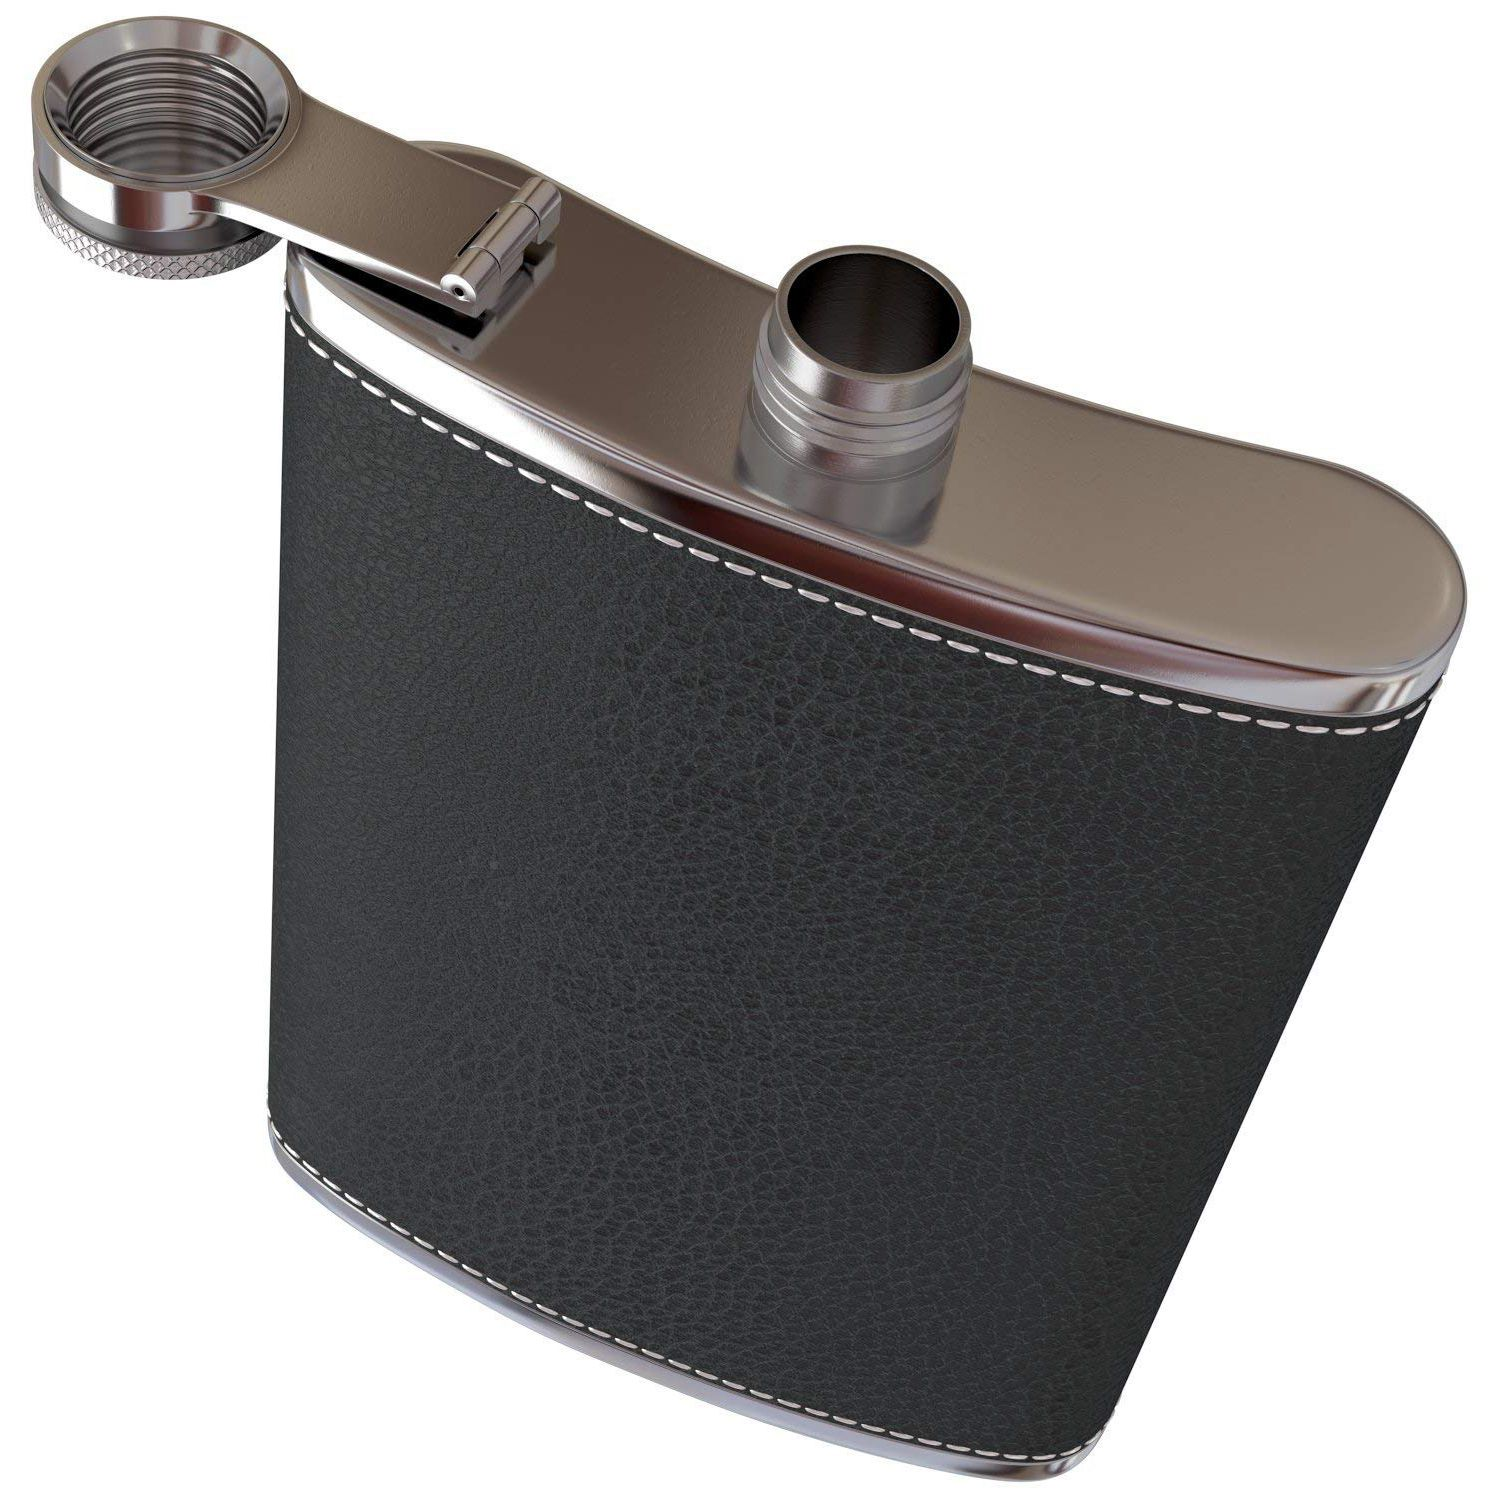 Pocket Hip Flask 8 Oz with Funnel Stainless Steel with Black Leather Wrapped Cover and Leak Proof Fits any Suit for Discrete in Hip Flasks from Home Garden